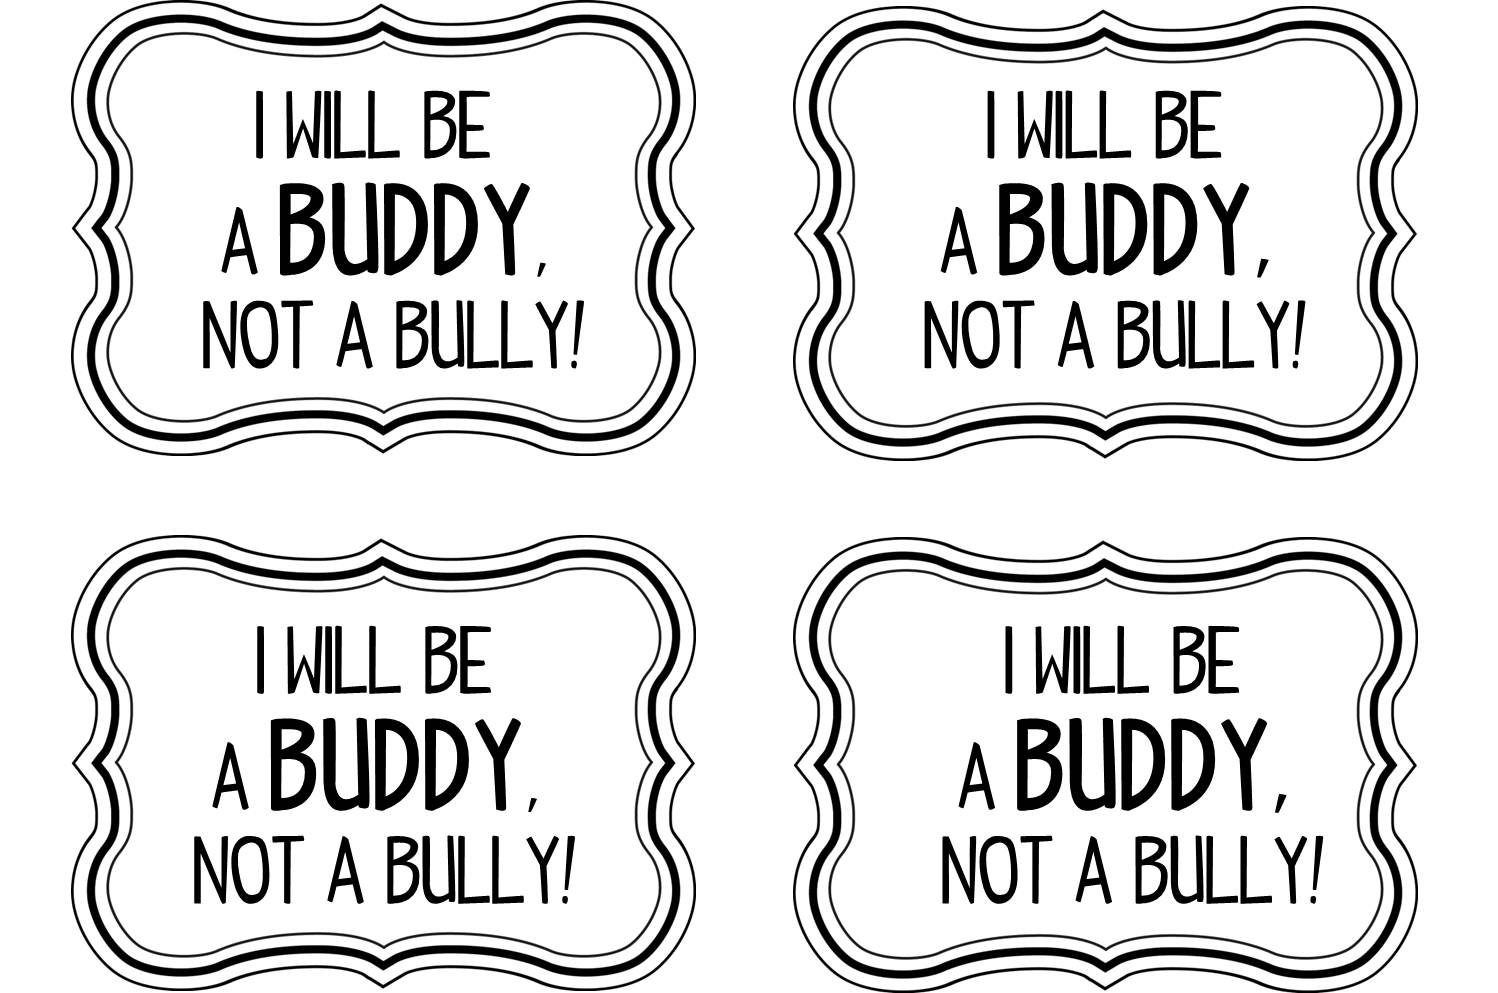 Adult Best Stop Bullying Coloring Pages Images top bullying coloring pages printable az 6994 max images